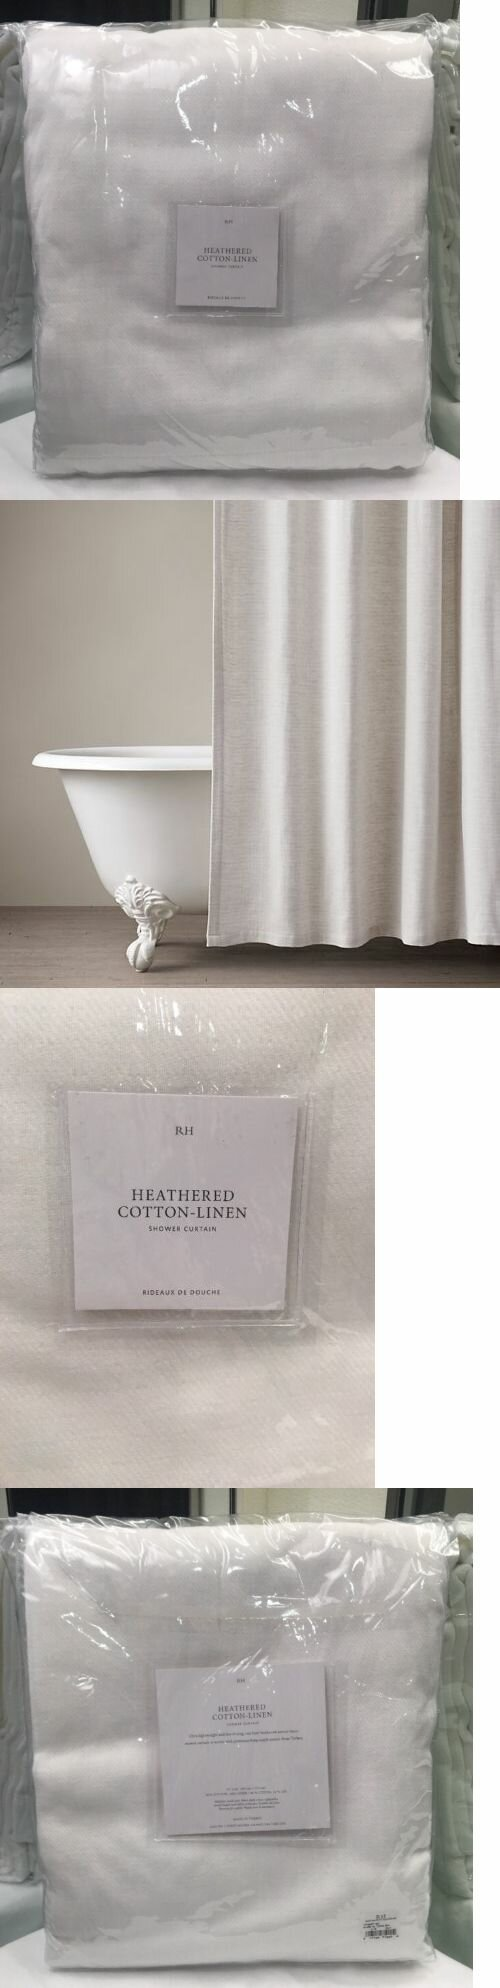 Interesting Bathroom Decor Ideas with Restoration Hardware Shower Curtain: Restoration Hardware Curtains | Chrome Shower Rod | Restoration Hardware Shower Curtain